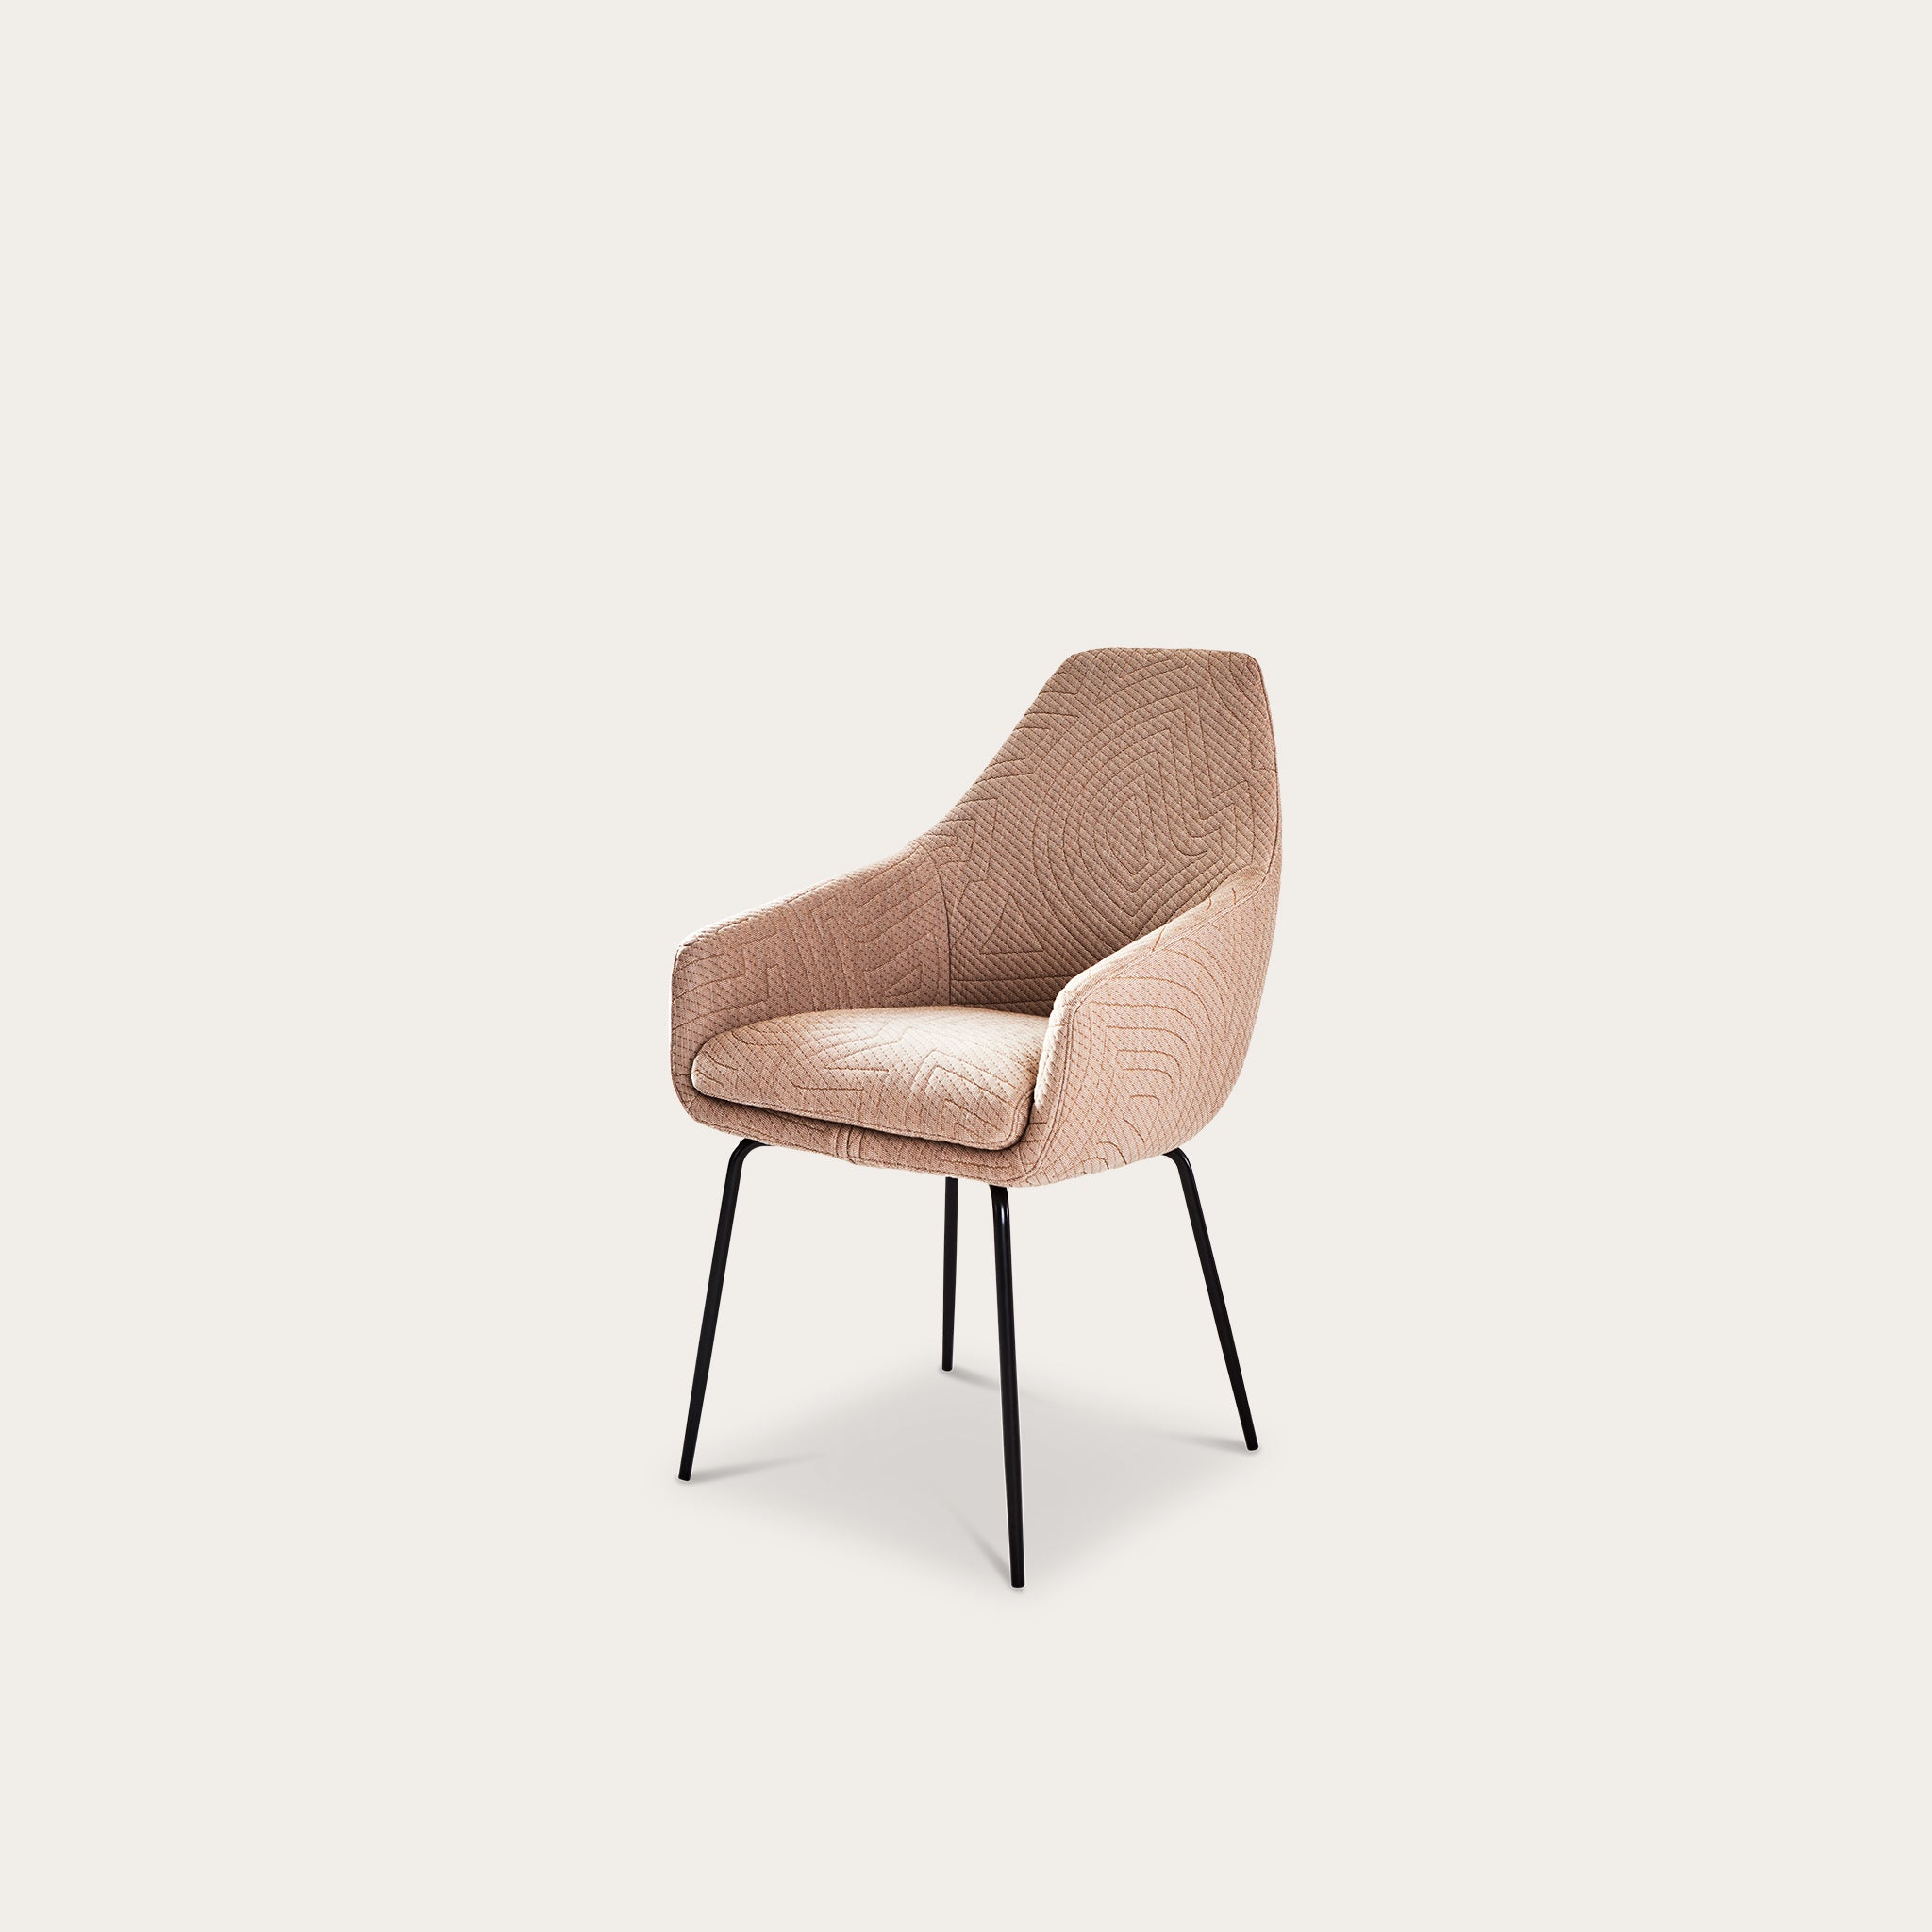 Vico Seating Geert Koster Designer Furniture Sku: 134-120-10095